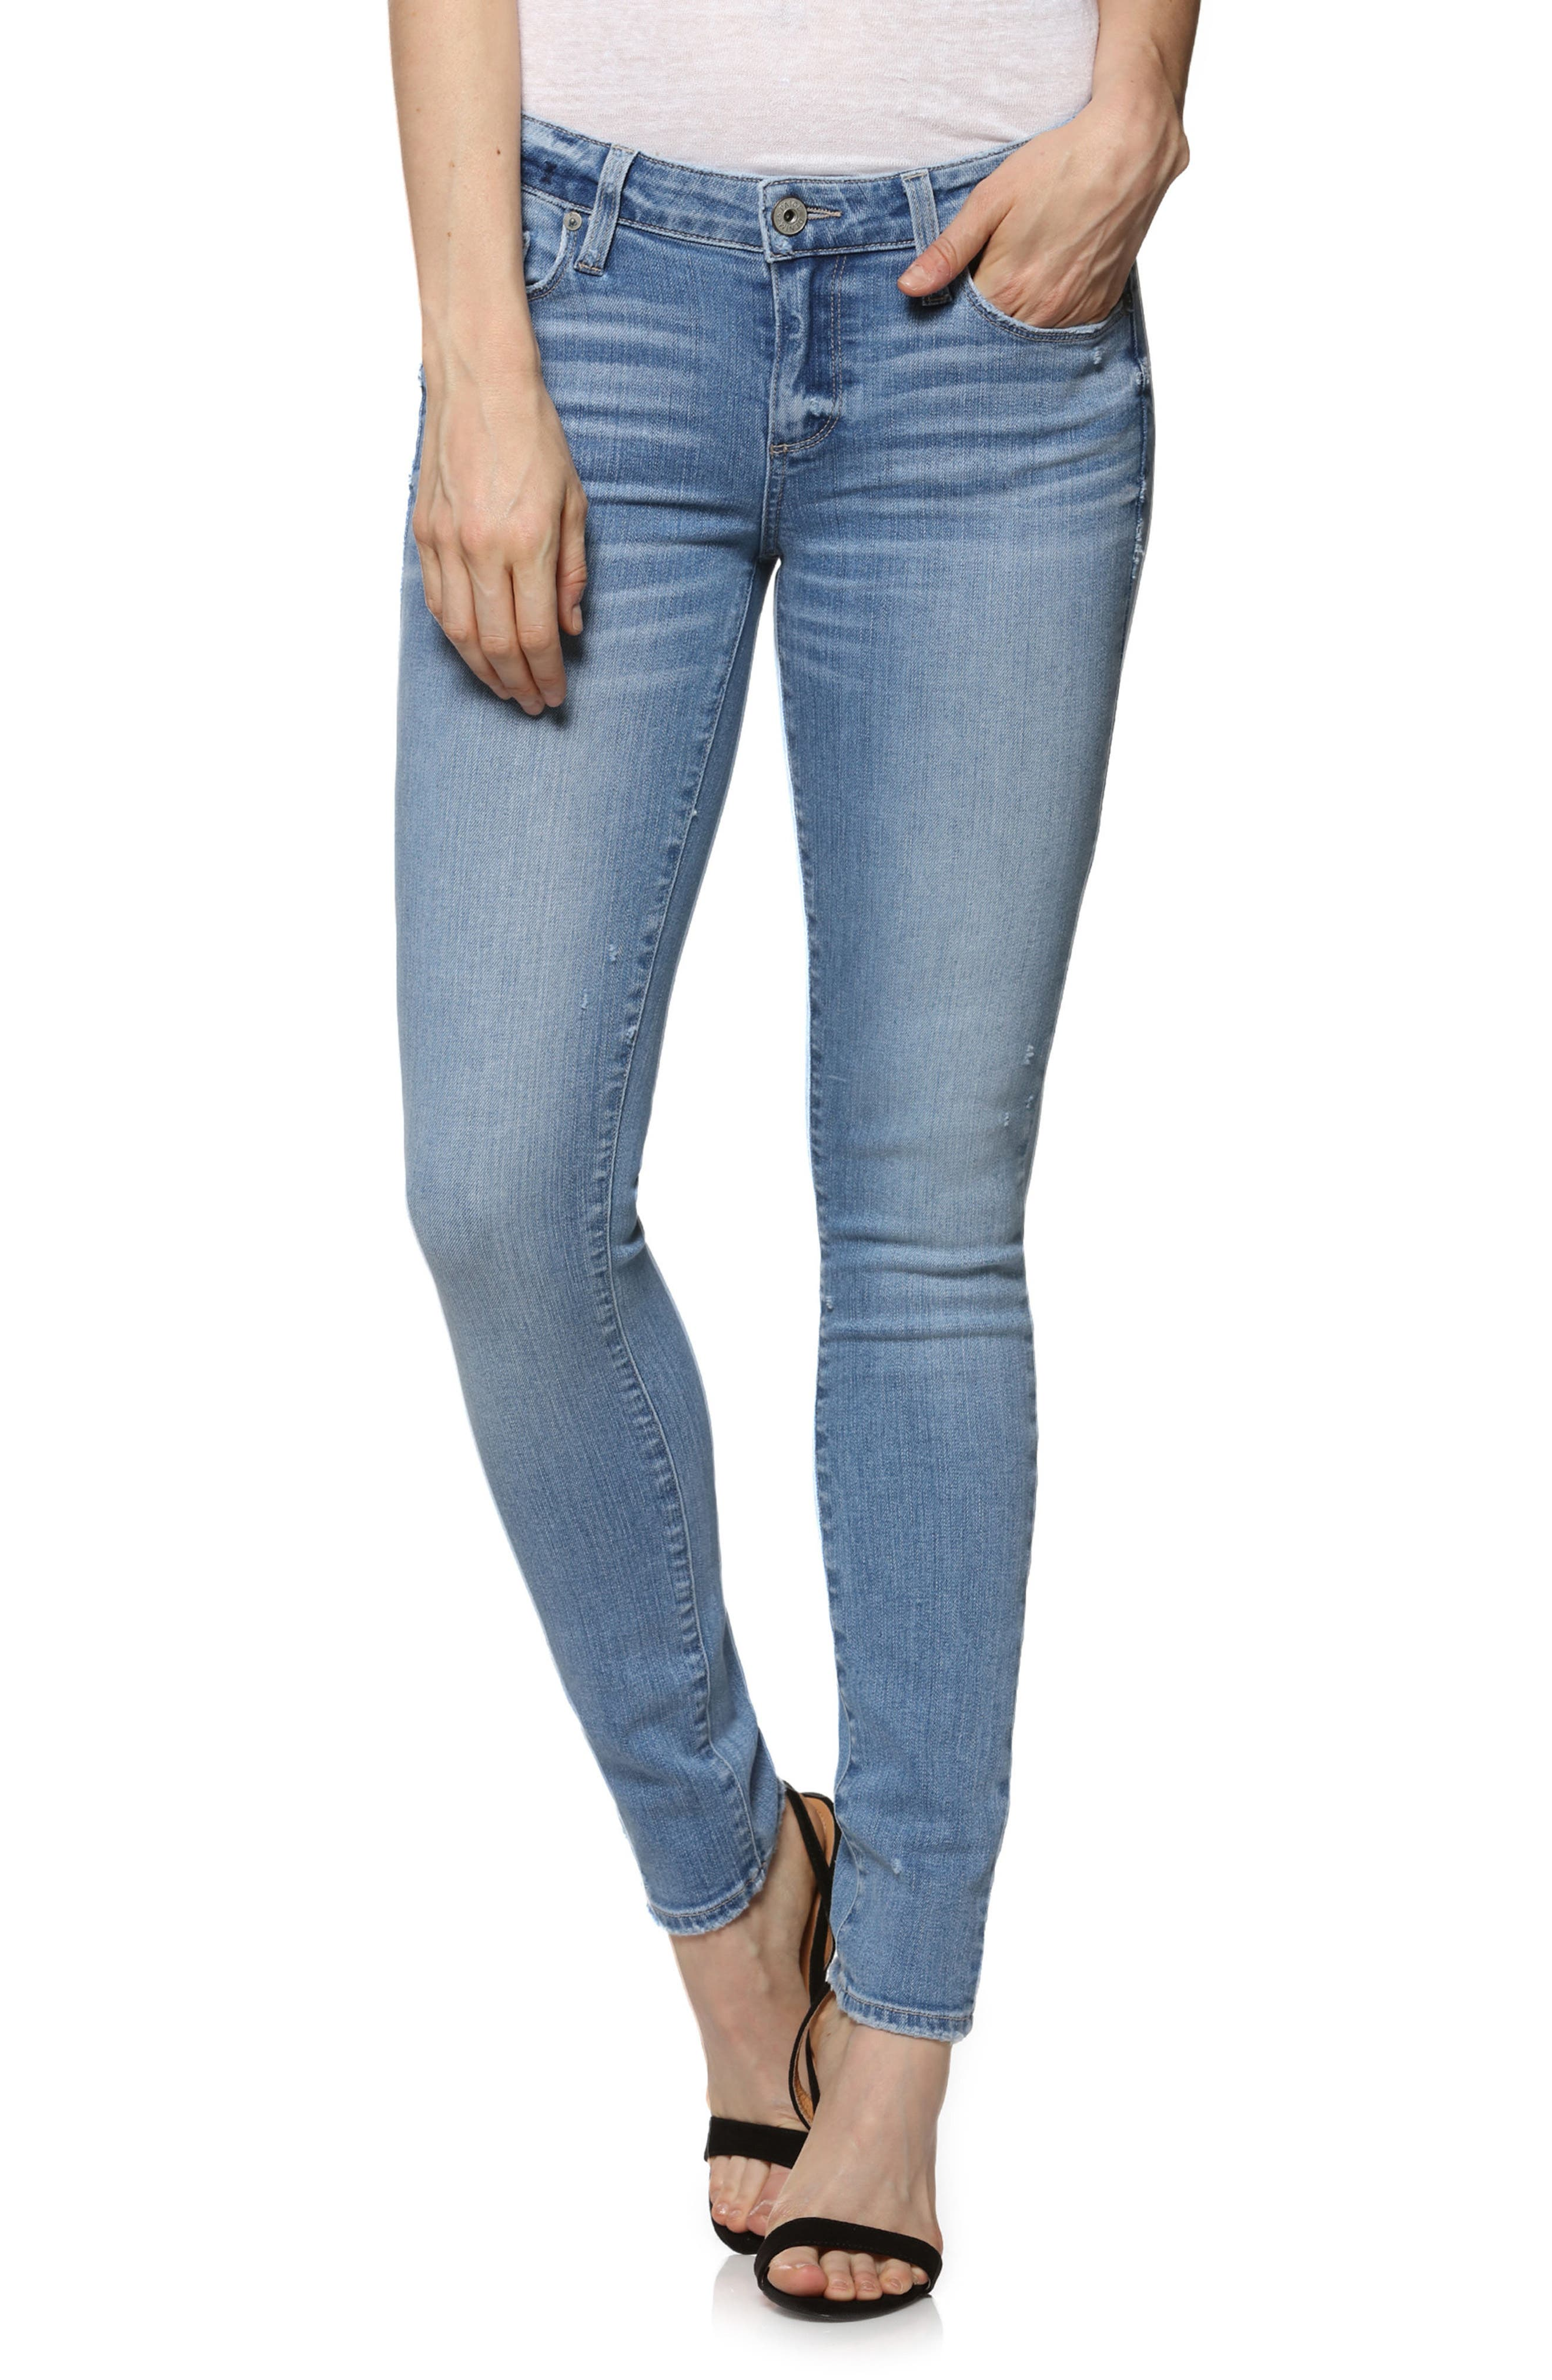 Skyline Ankle Skinny Jeans,                             Main thumbnail 1, color,                             400